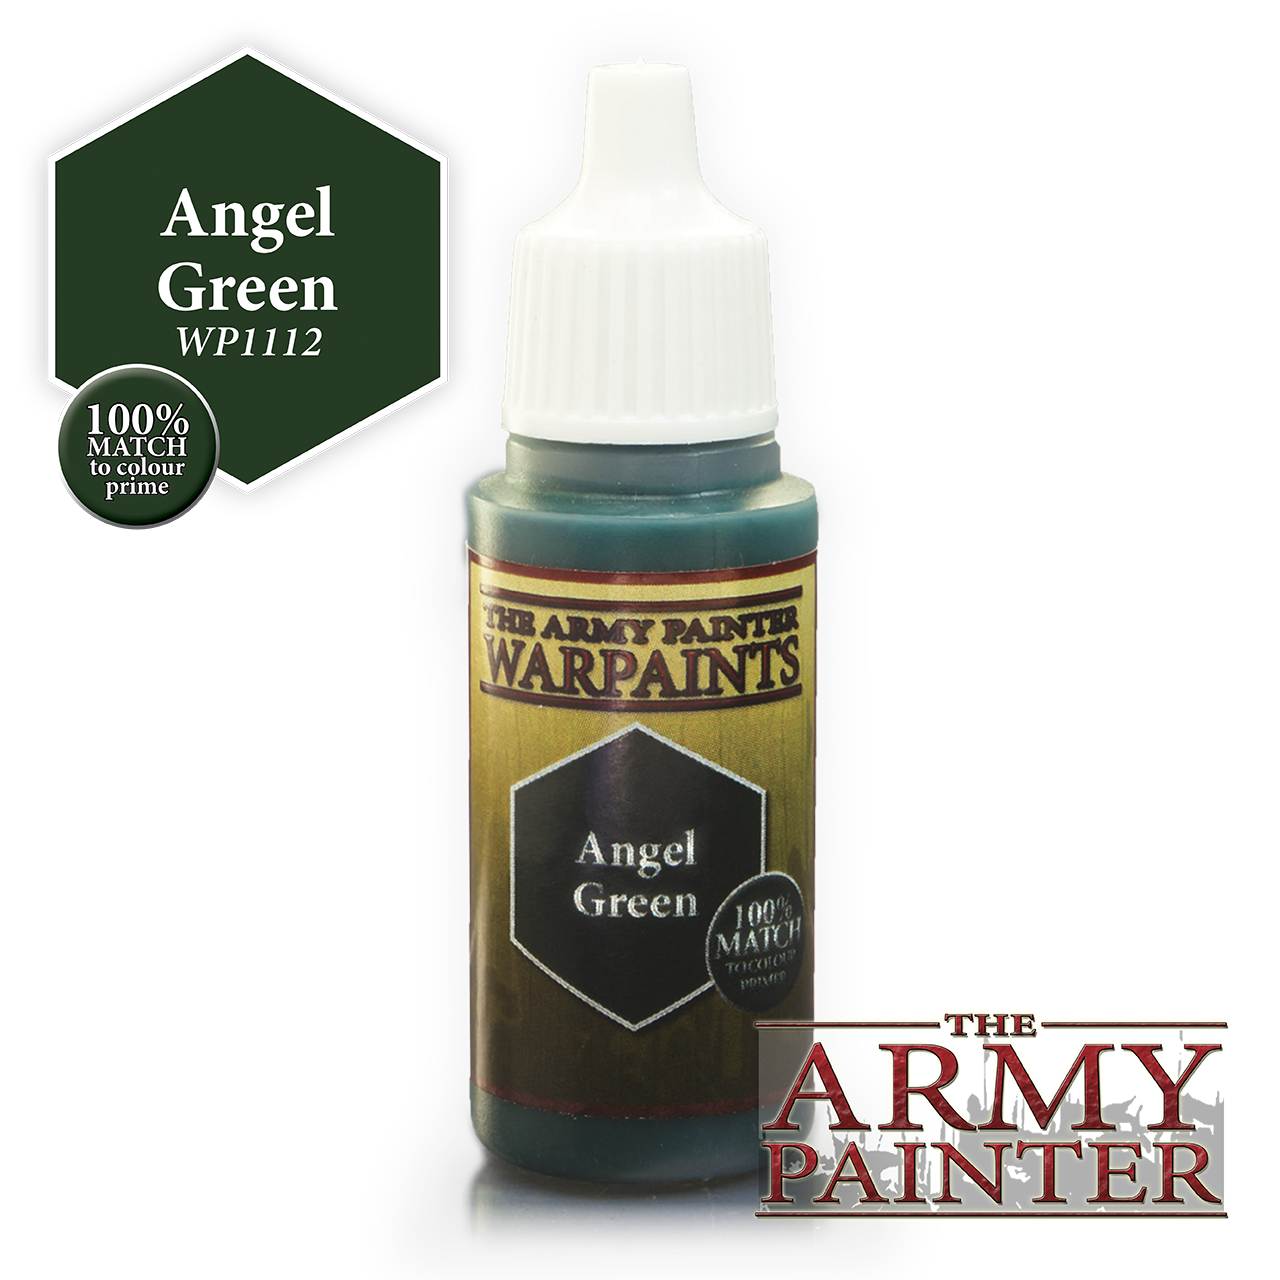 The Army Painter Warpaints: Angel Green (18ml)